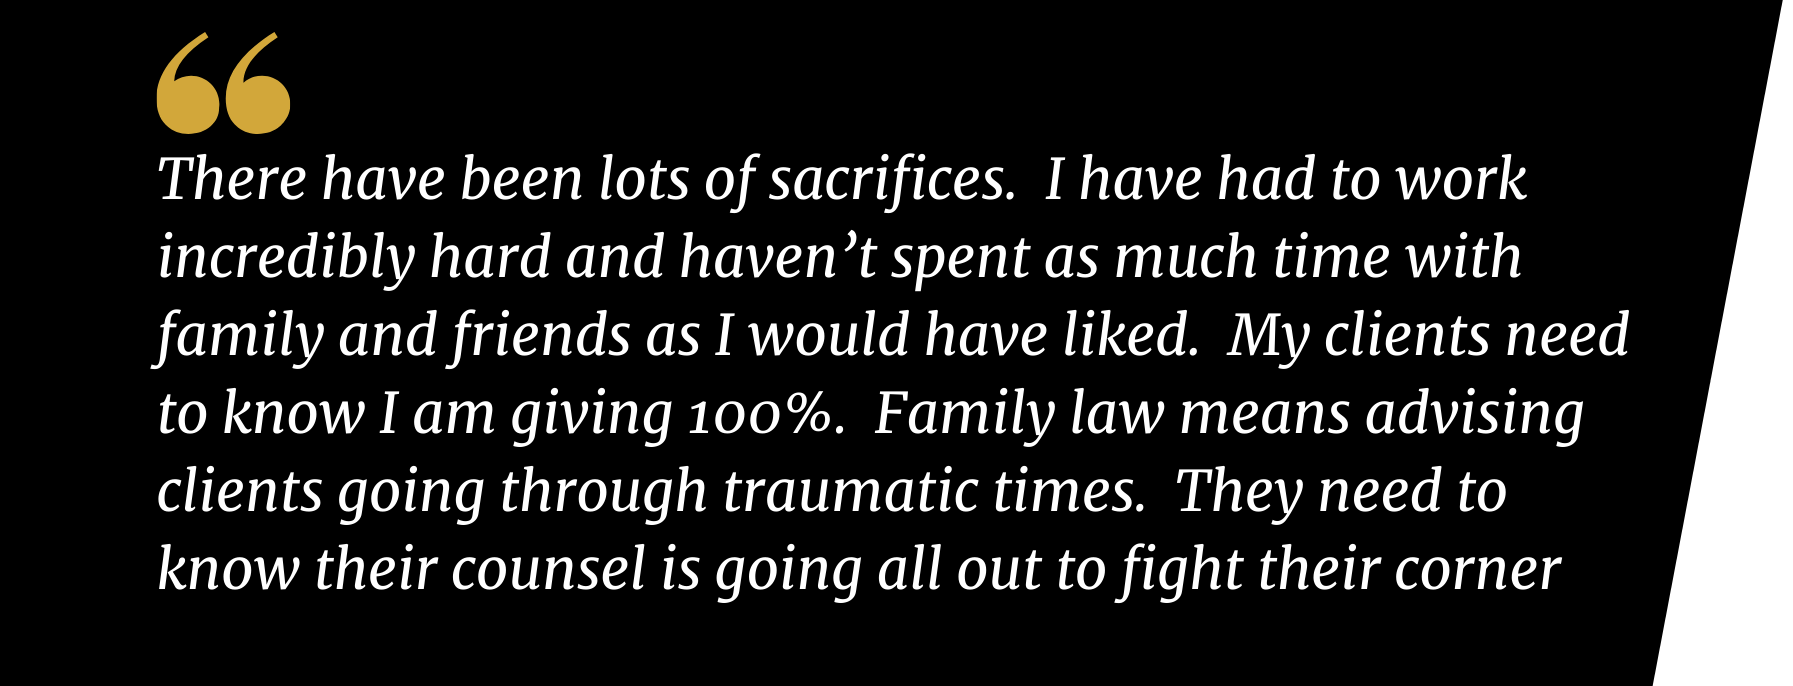 Zira Hussain, There have been lots of sacrifices.  I have had to work incredibly hard and haven't spent as much time with family and friends as I would have liked.  My clients need to know I am giving 100%.  Family law means advising clients going through traumatic times.  They need to know their counsel is going all out to fight their corner